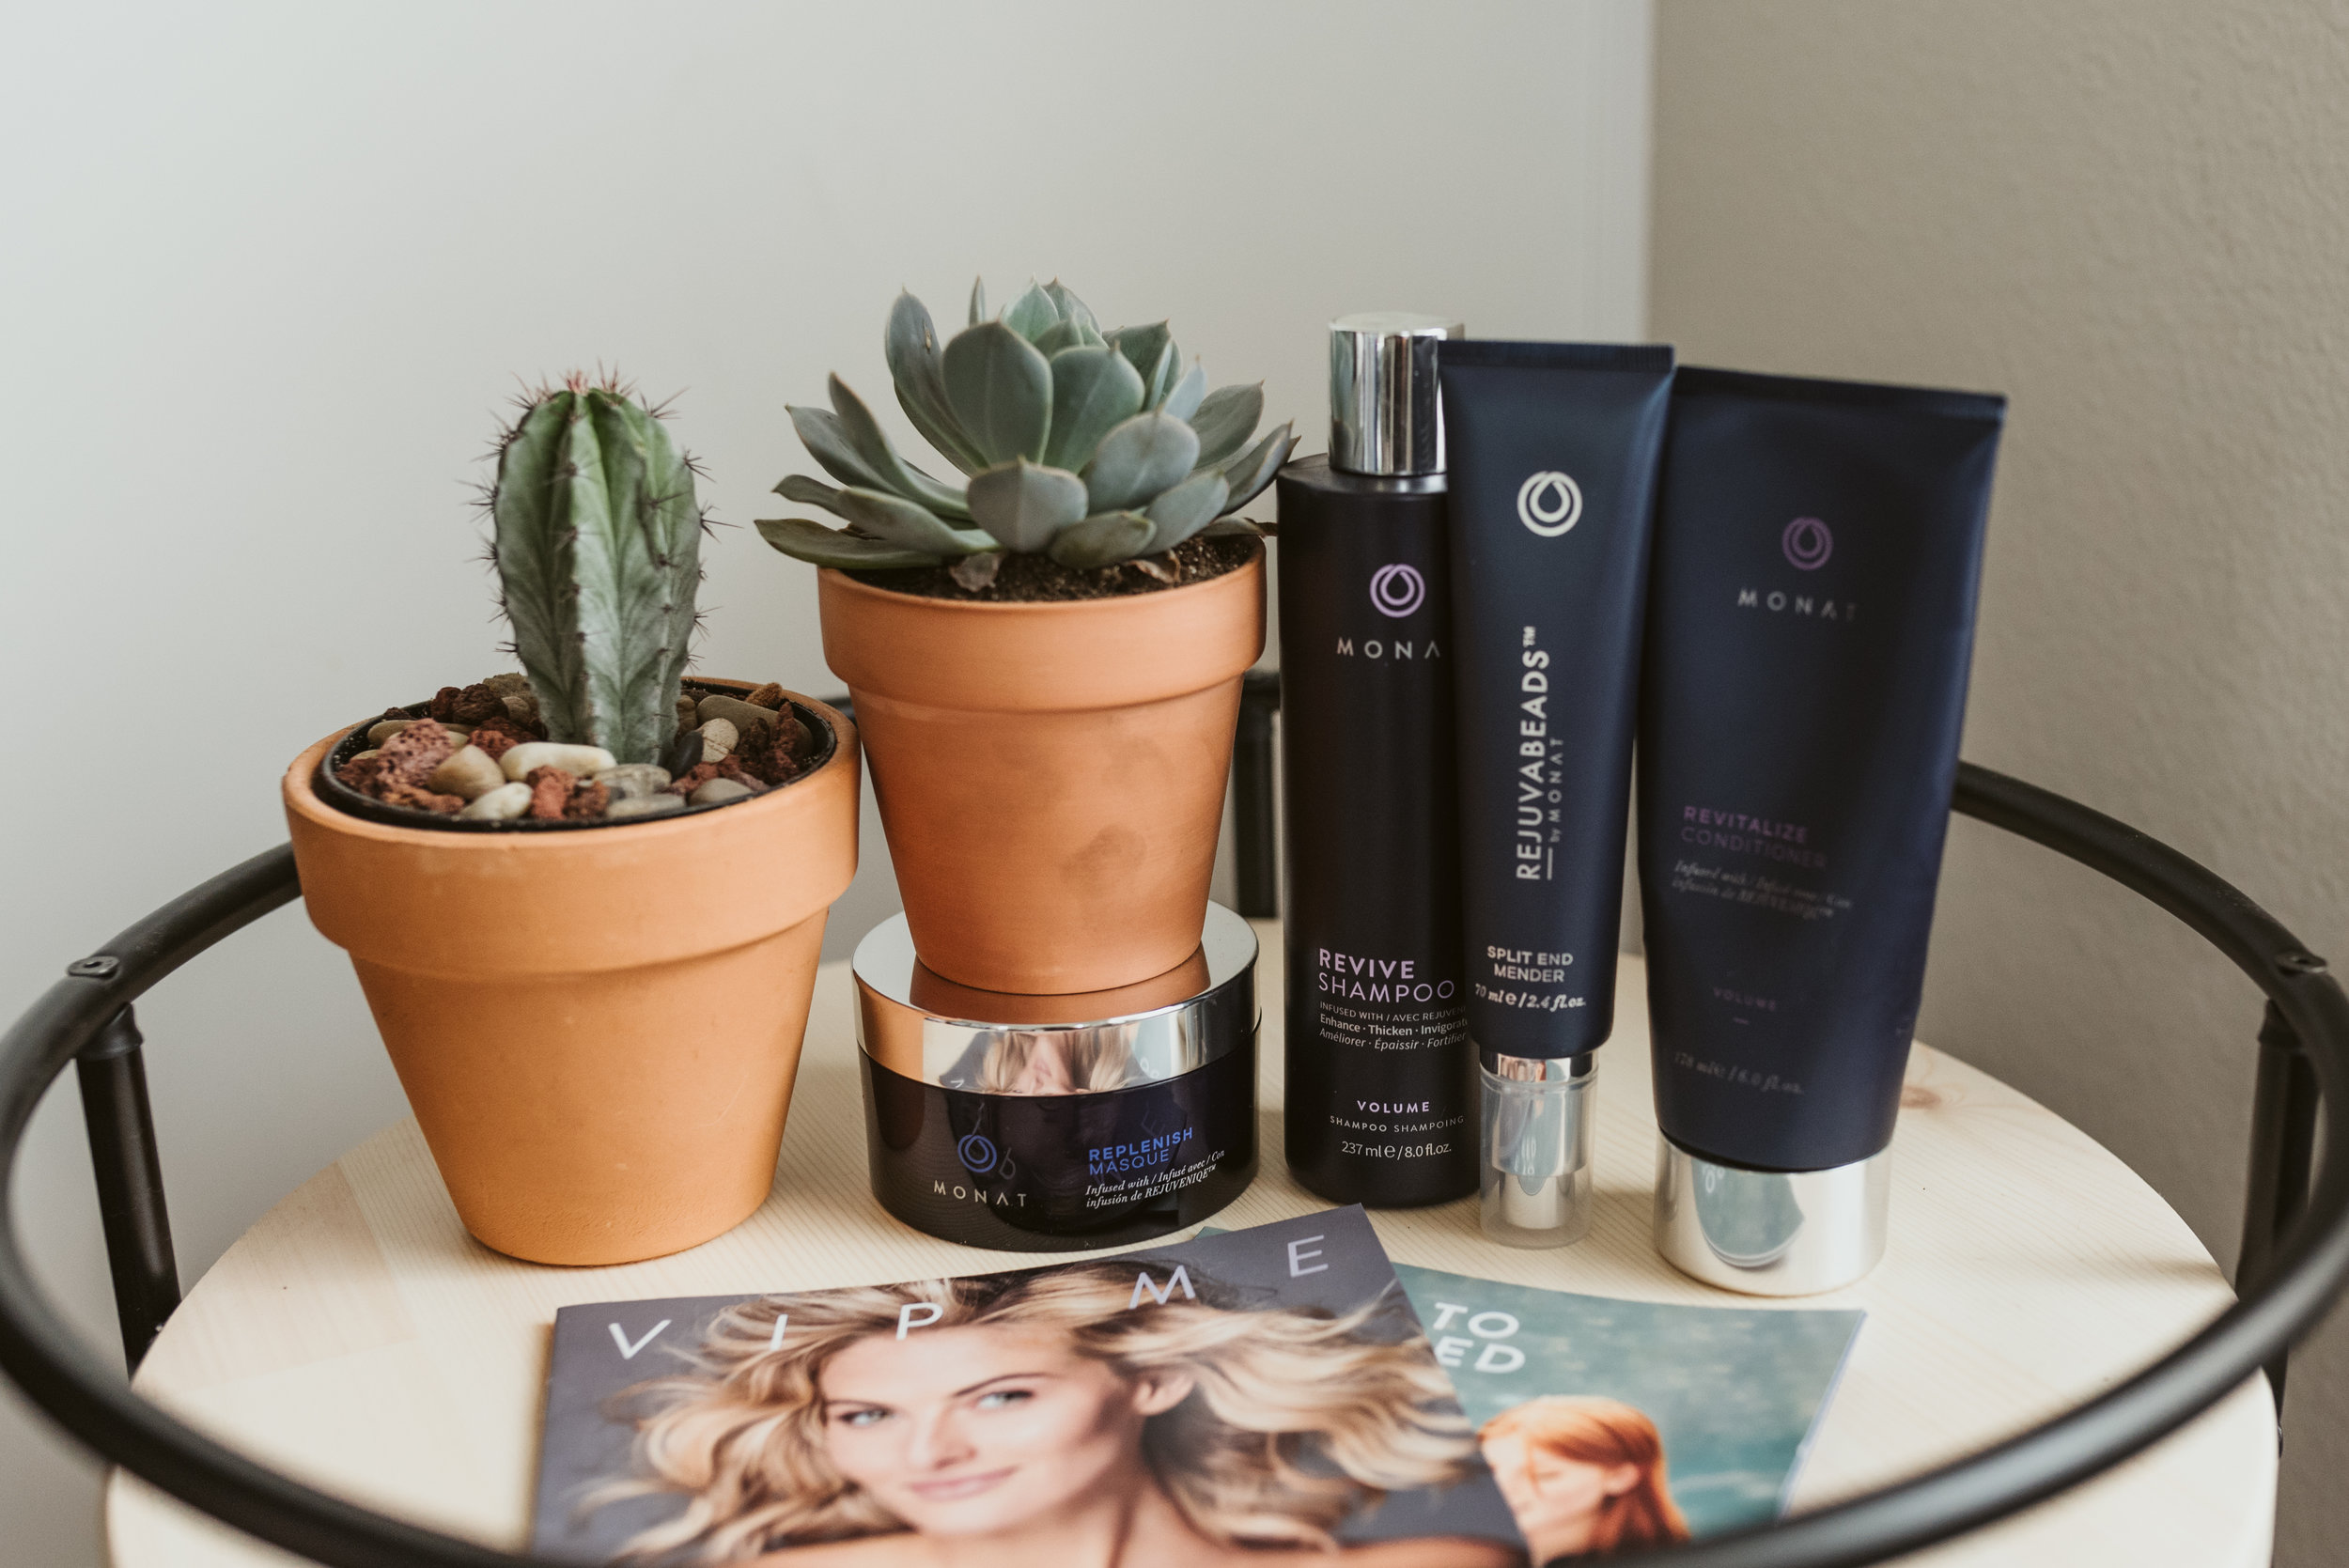 My Monat Favorites: Revive Shampoo, Revitalize Conditioner, Replenish Masque, and Rejuvabeads